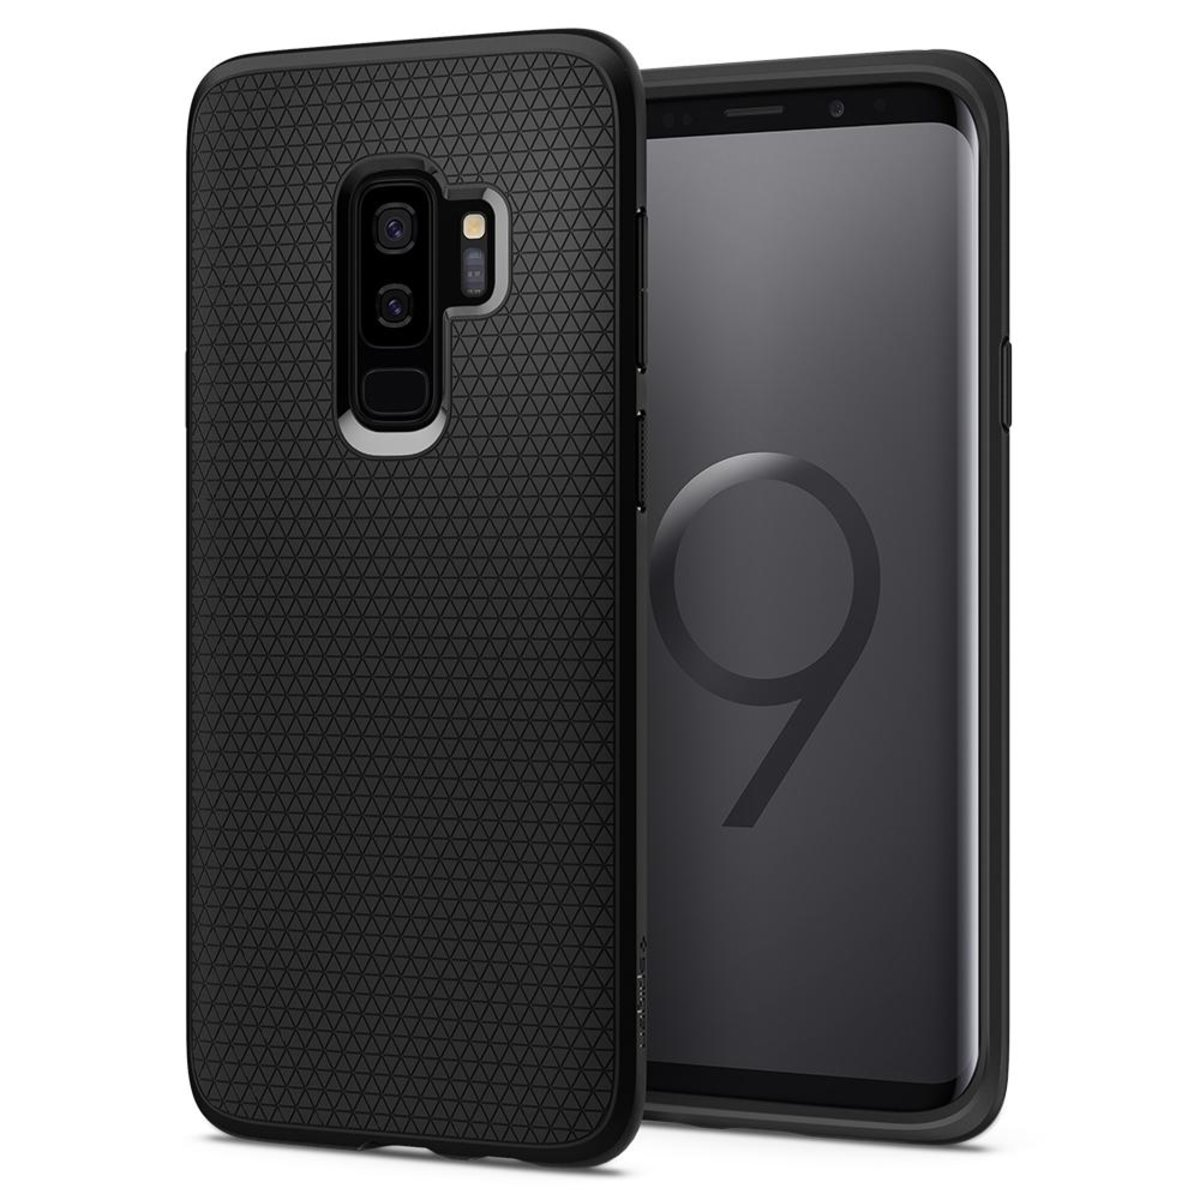 Galaxy S9+ Case Liquid Air - Matte Black